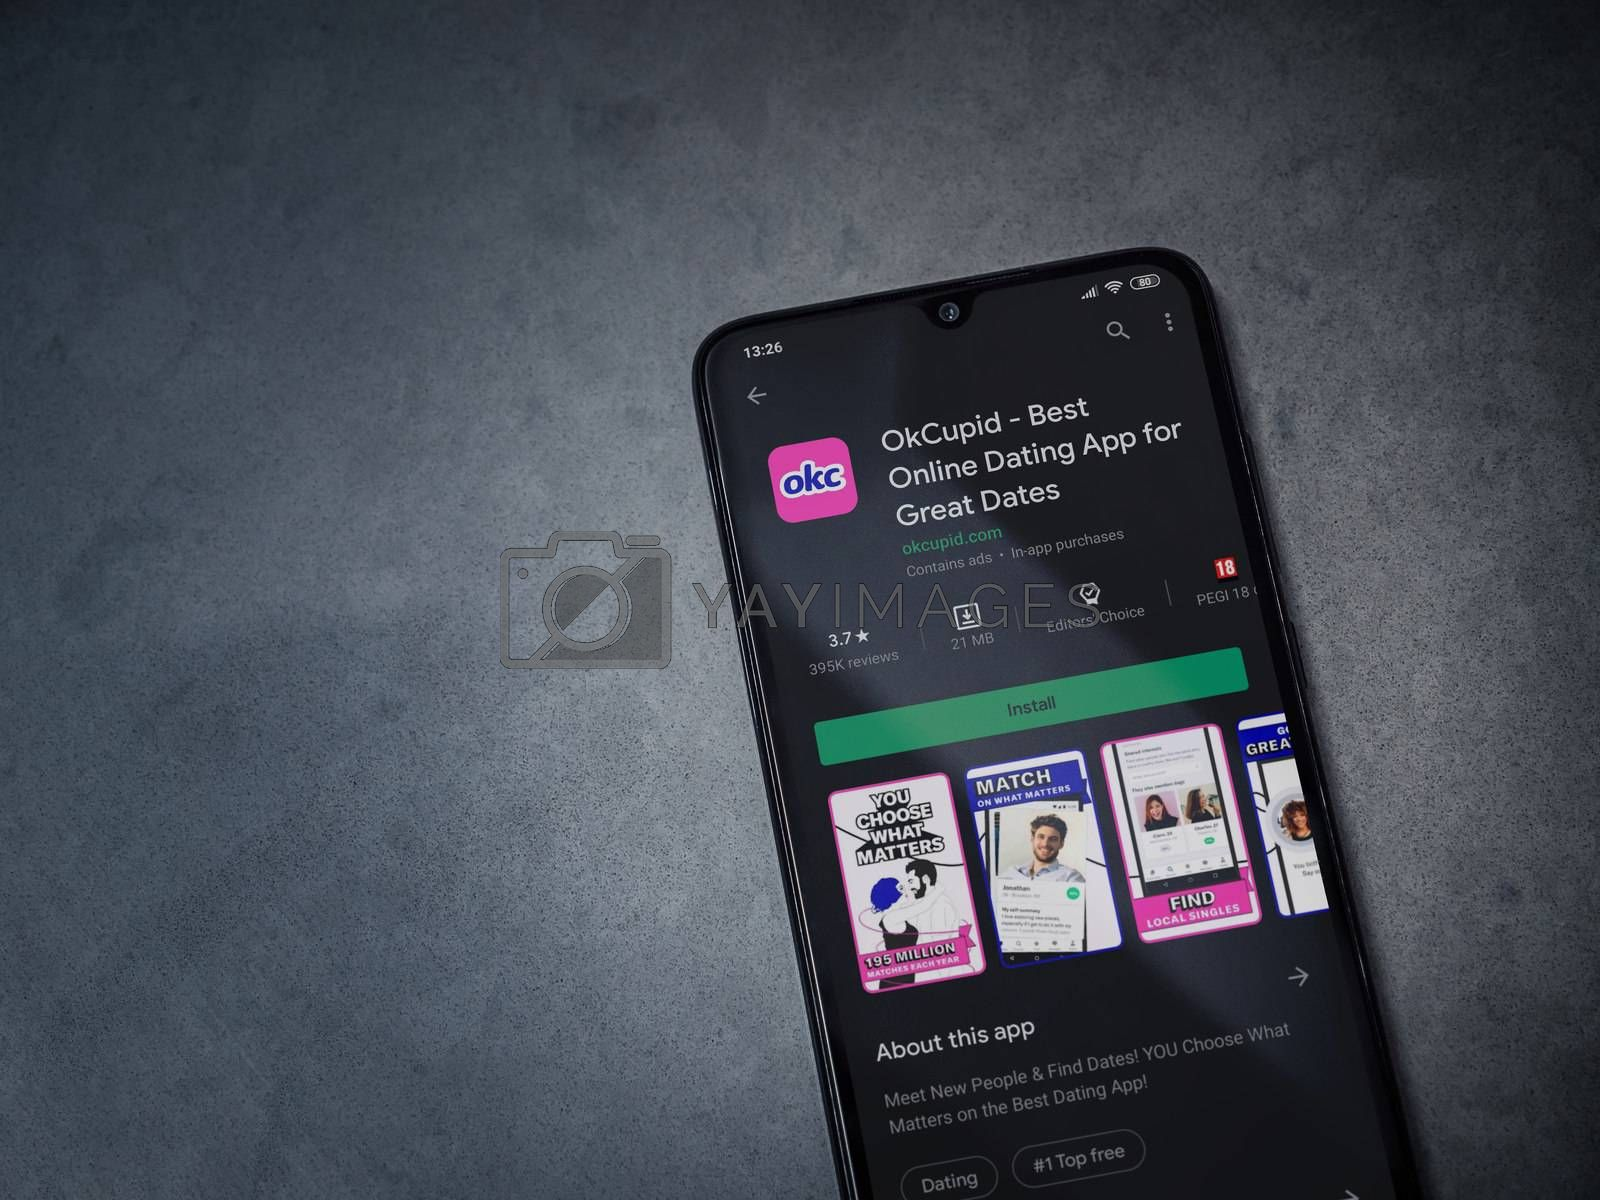 OkCupid app play store page on the display of a black mobile sma by Wave Movies